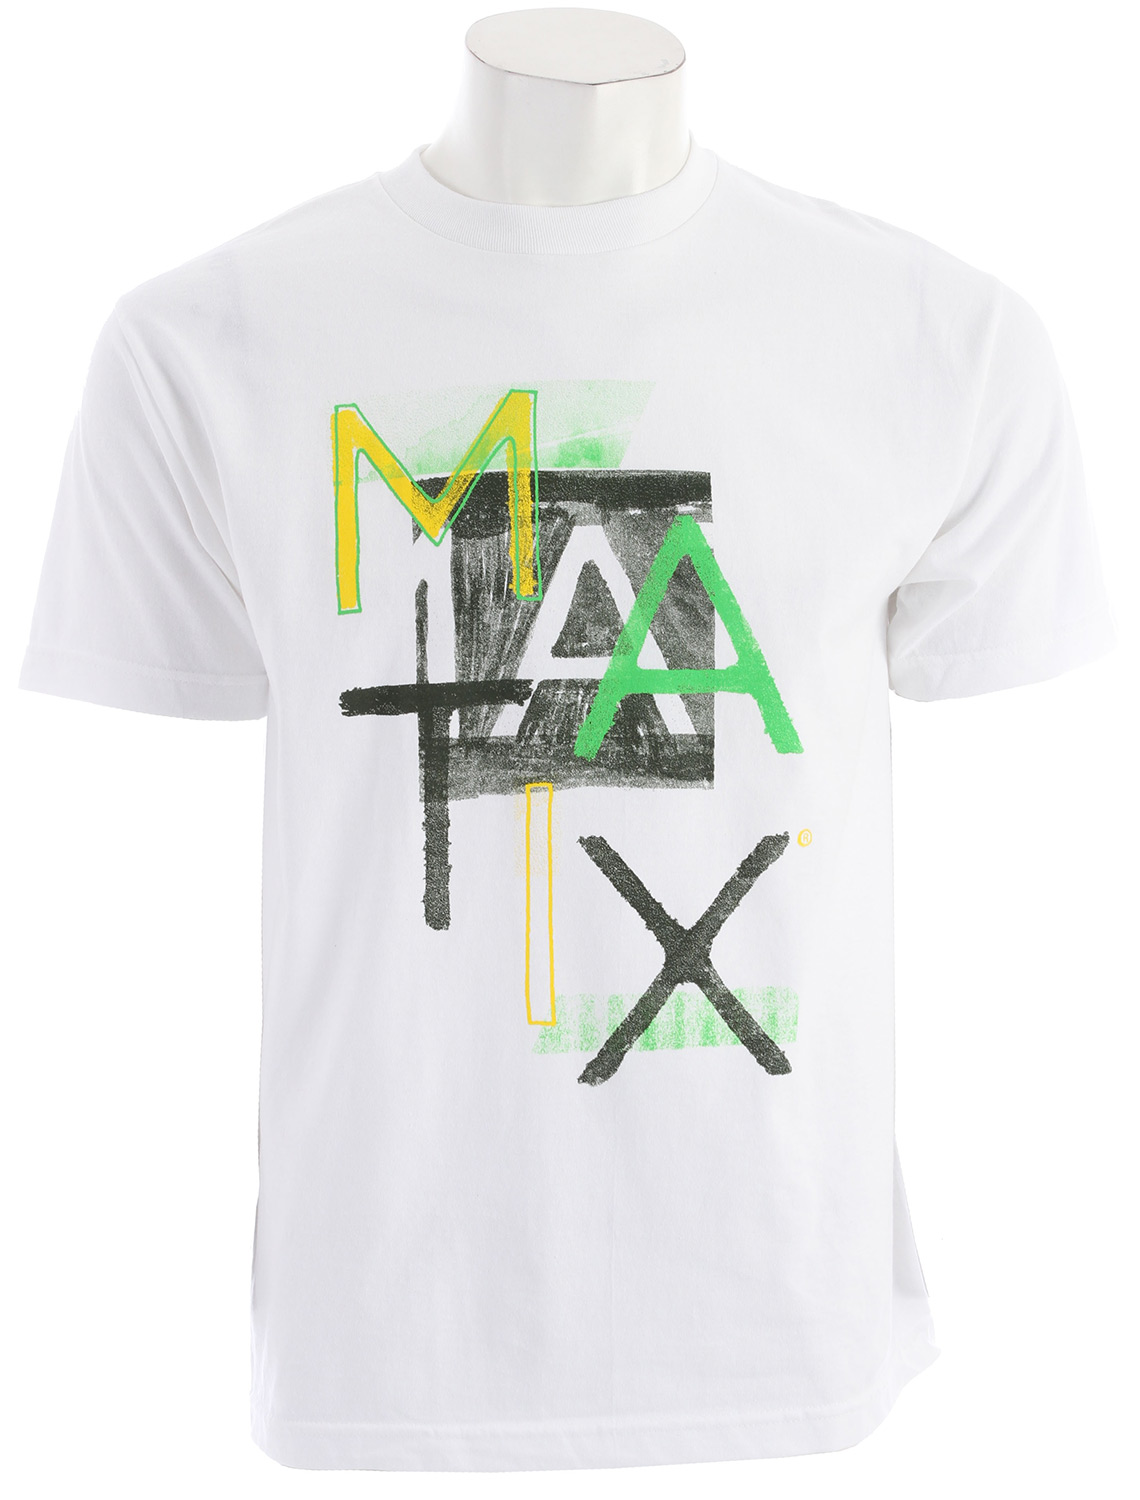 Whether you want a shirt you can relax in, or you just wanna add some flavor to your day, the Matix Mediums T-Shirt will help. With the shirts standard fit, it allows you to stay relaxed and comfortable while you relax after a hard day of work. So add some flavor to your life, with the Matix Mediums T-Shirt.Key Features of the Matix Mediums T-Shirt:  Inkprint with cuff label and Monovert lower left back hit.  Standard Fit.  Material: 100% Cotton - $7.95